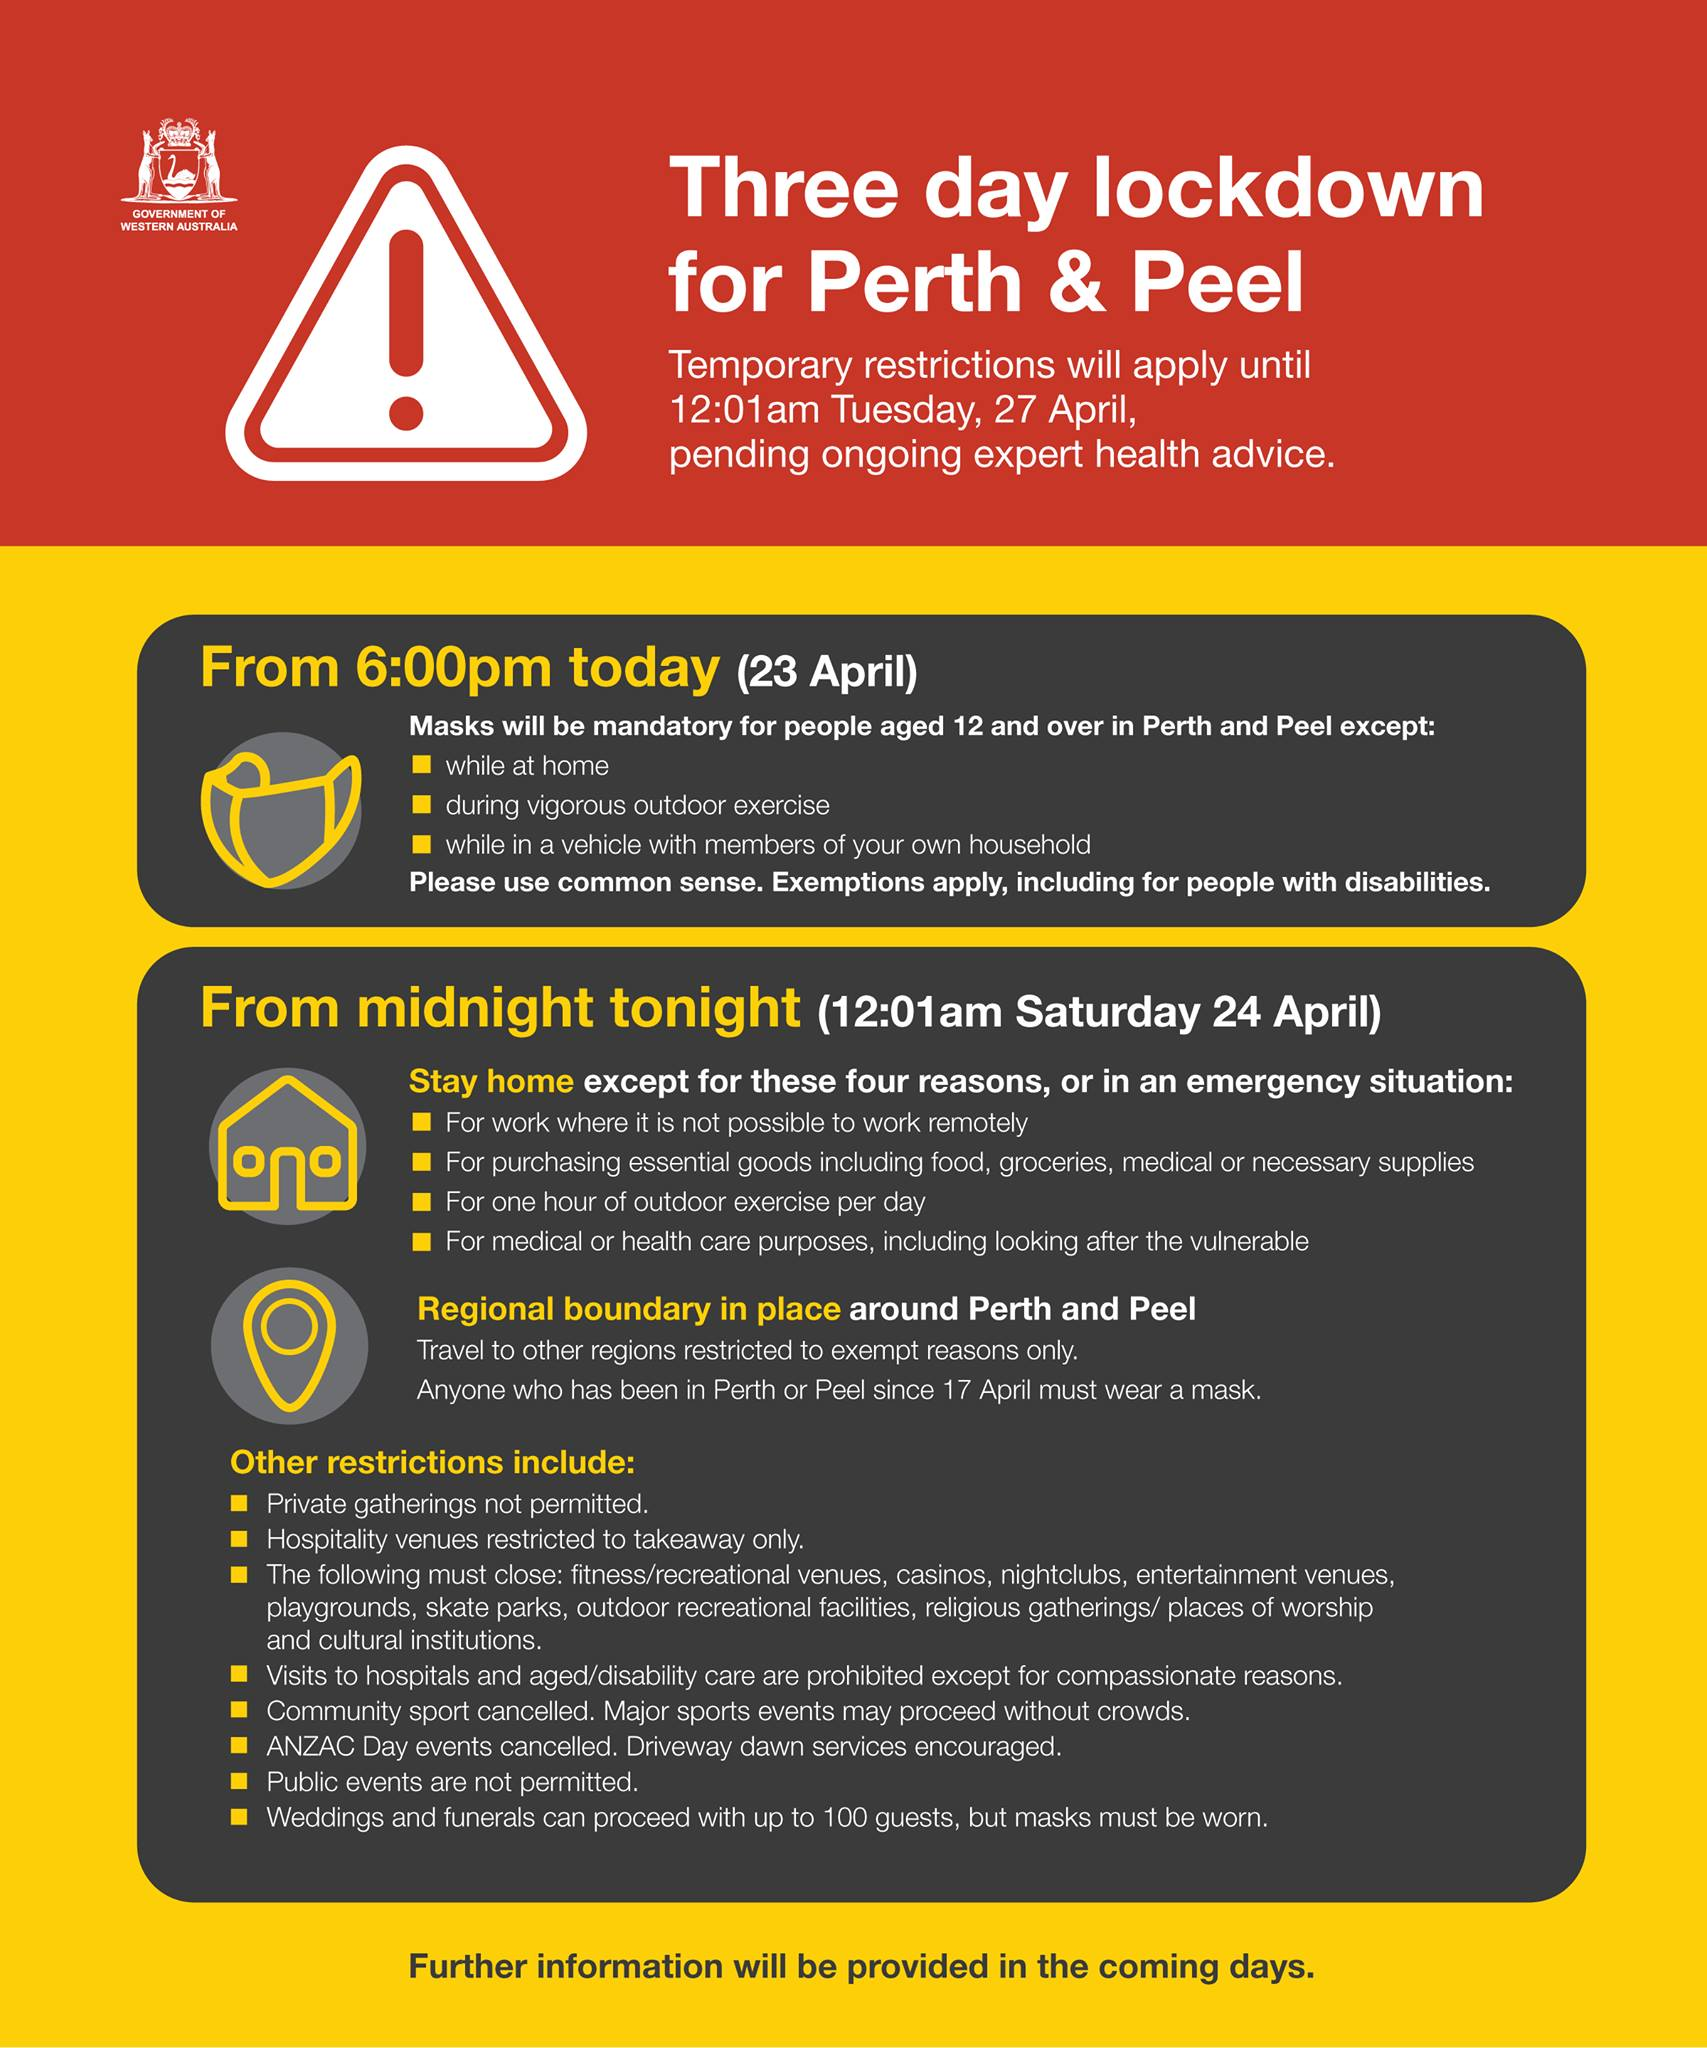 3 day lockdown for Perth and Peel